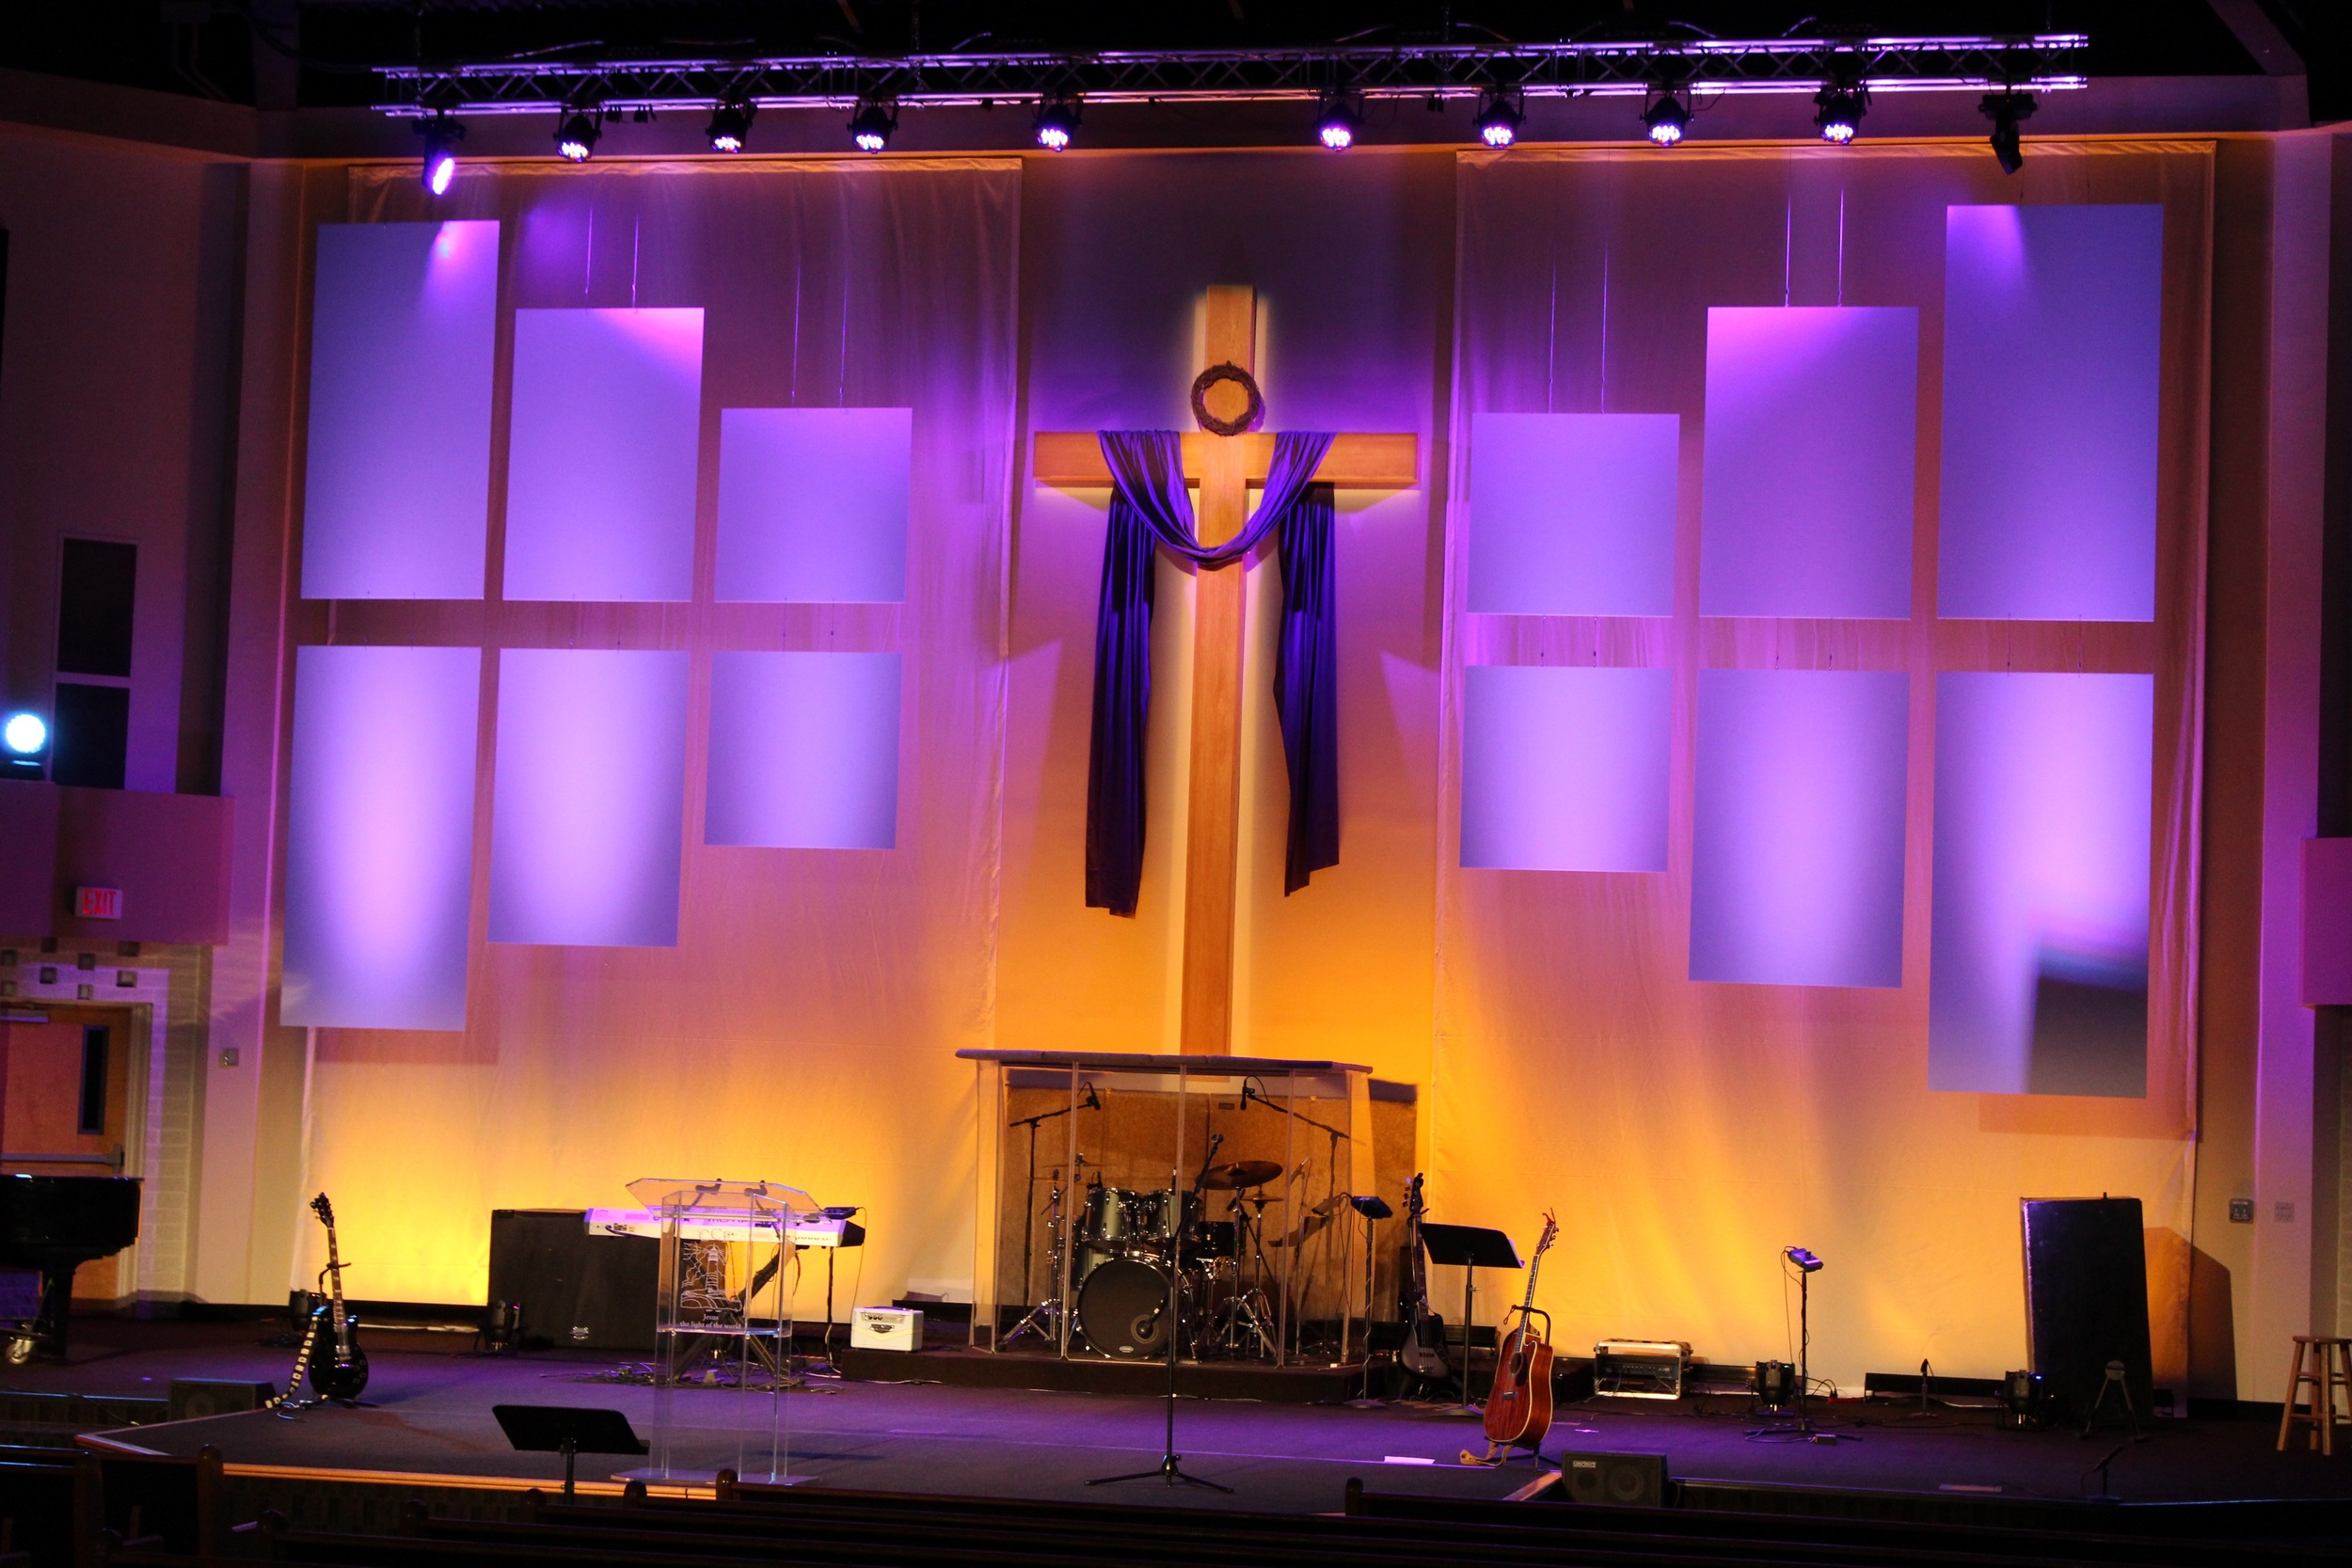 Chesapeake_Christian_Fellowship_Church_12.jpg